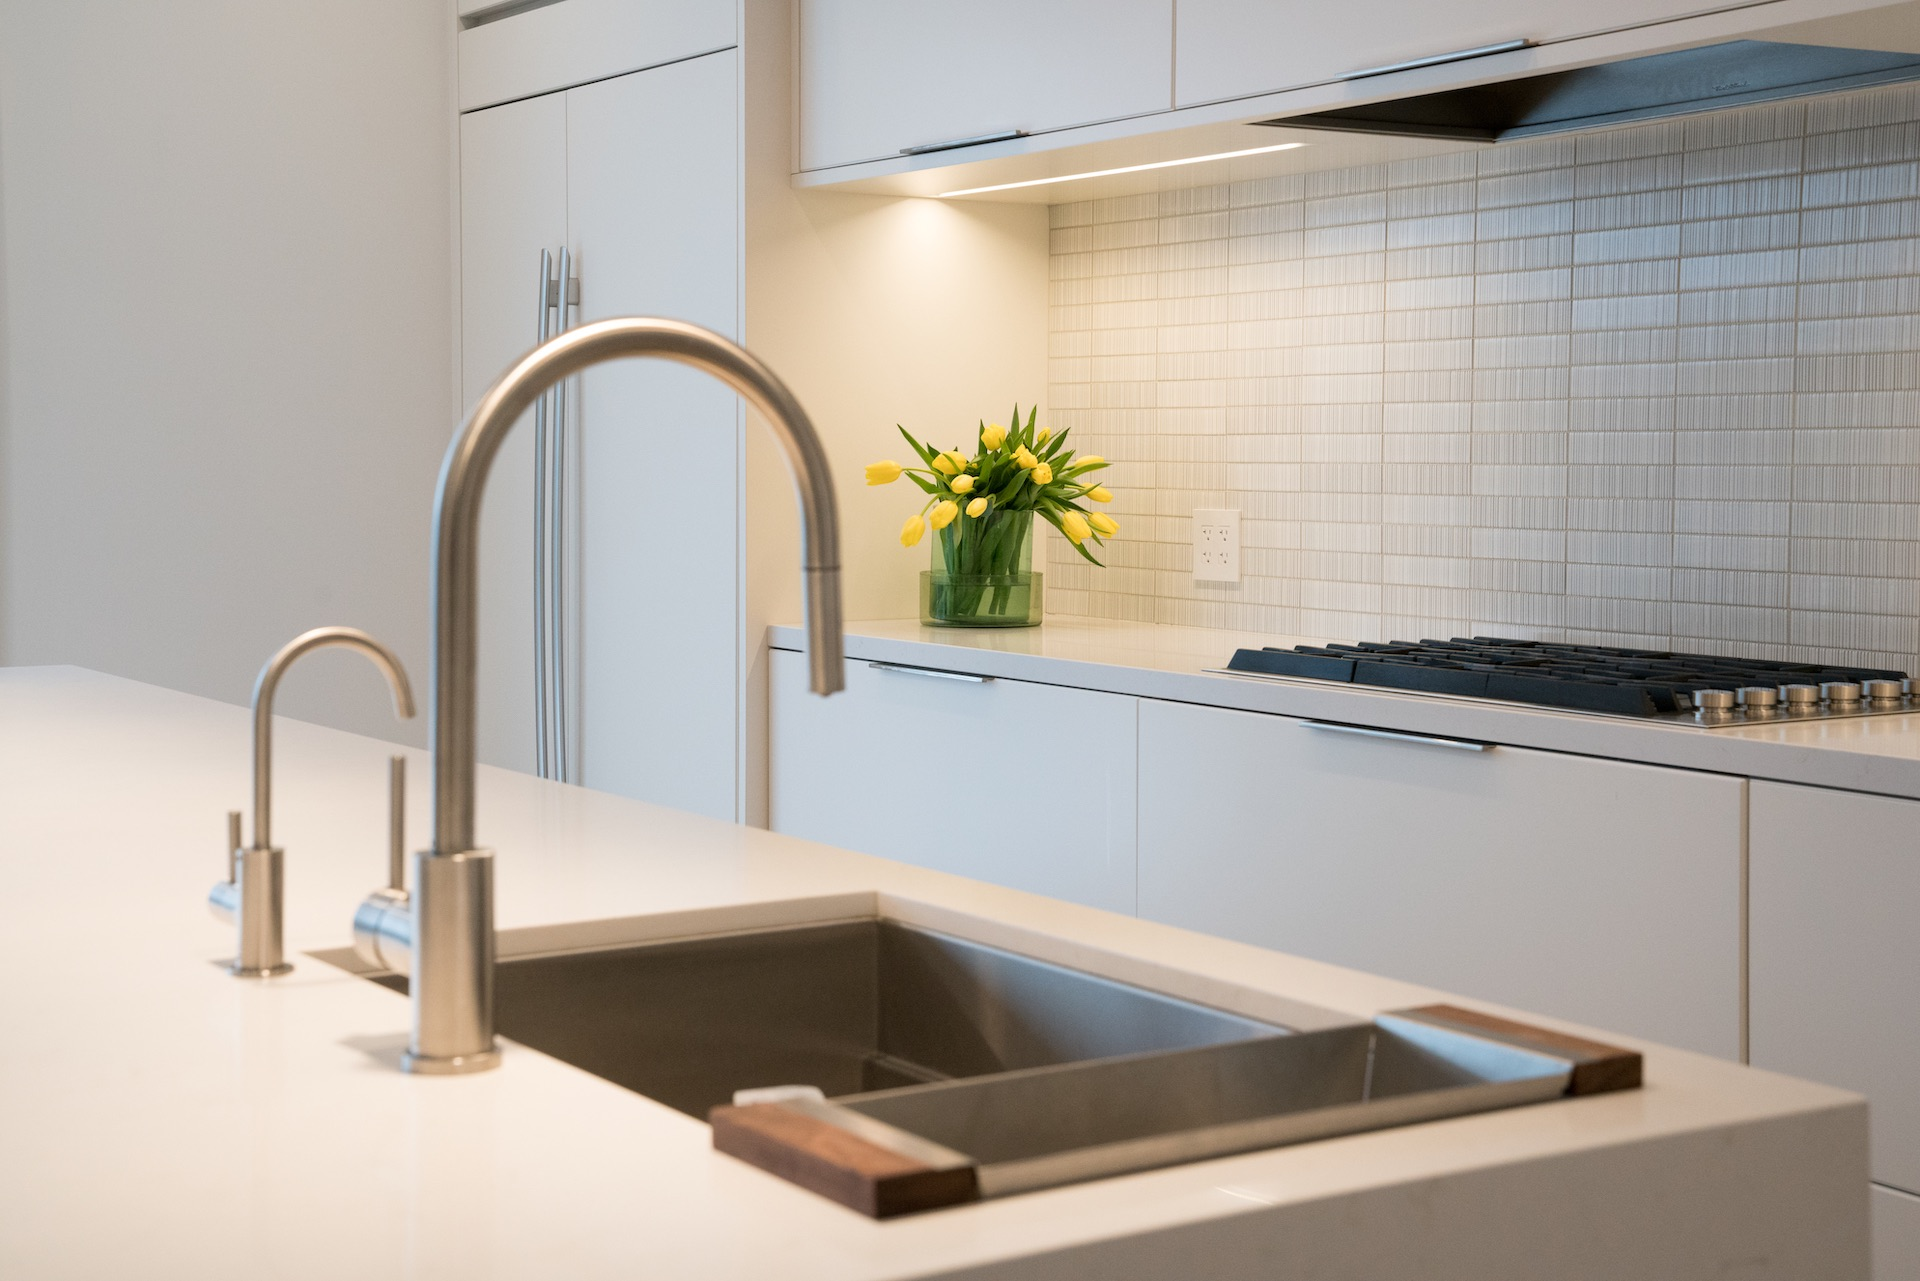 Sink with silver faucet